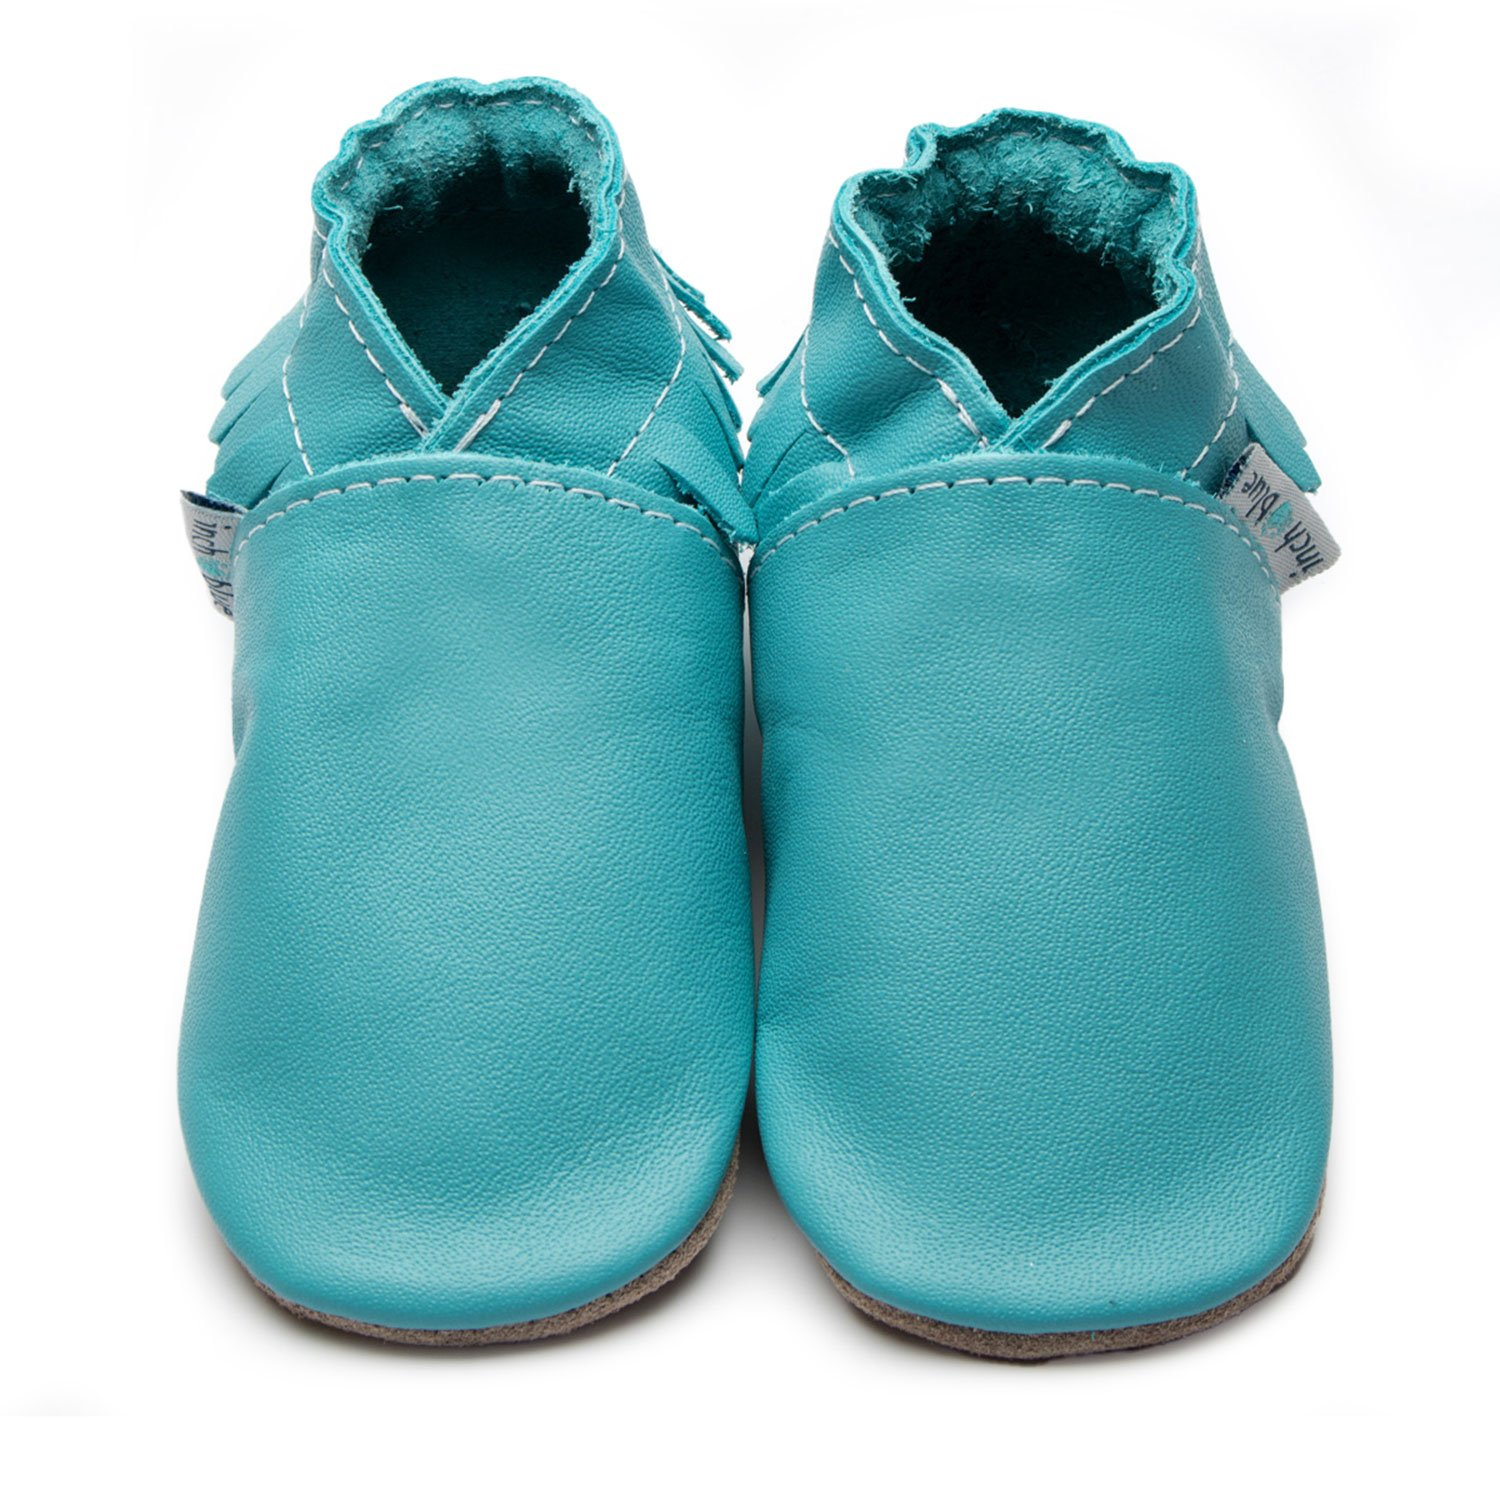 Moccasin Turquoise